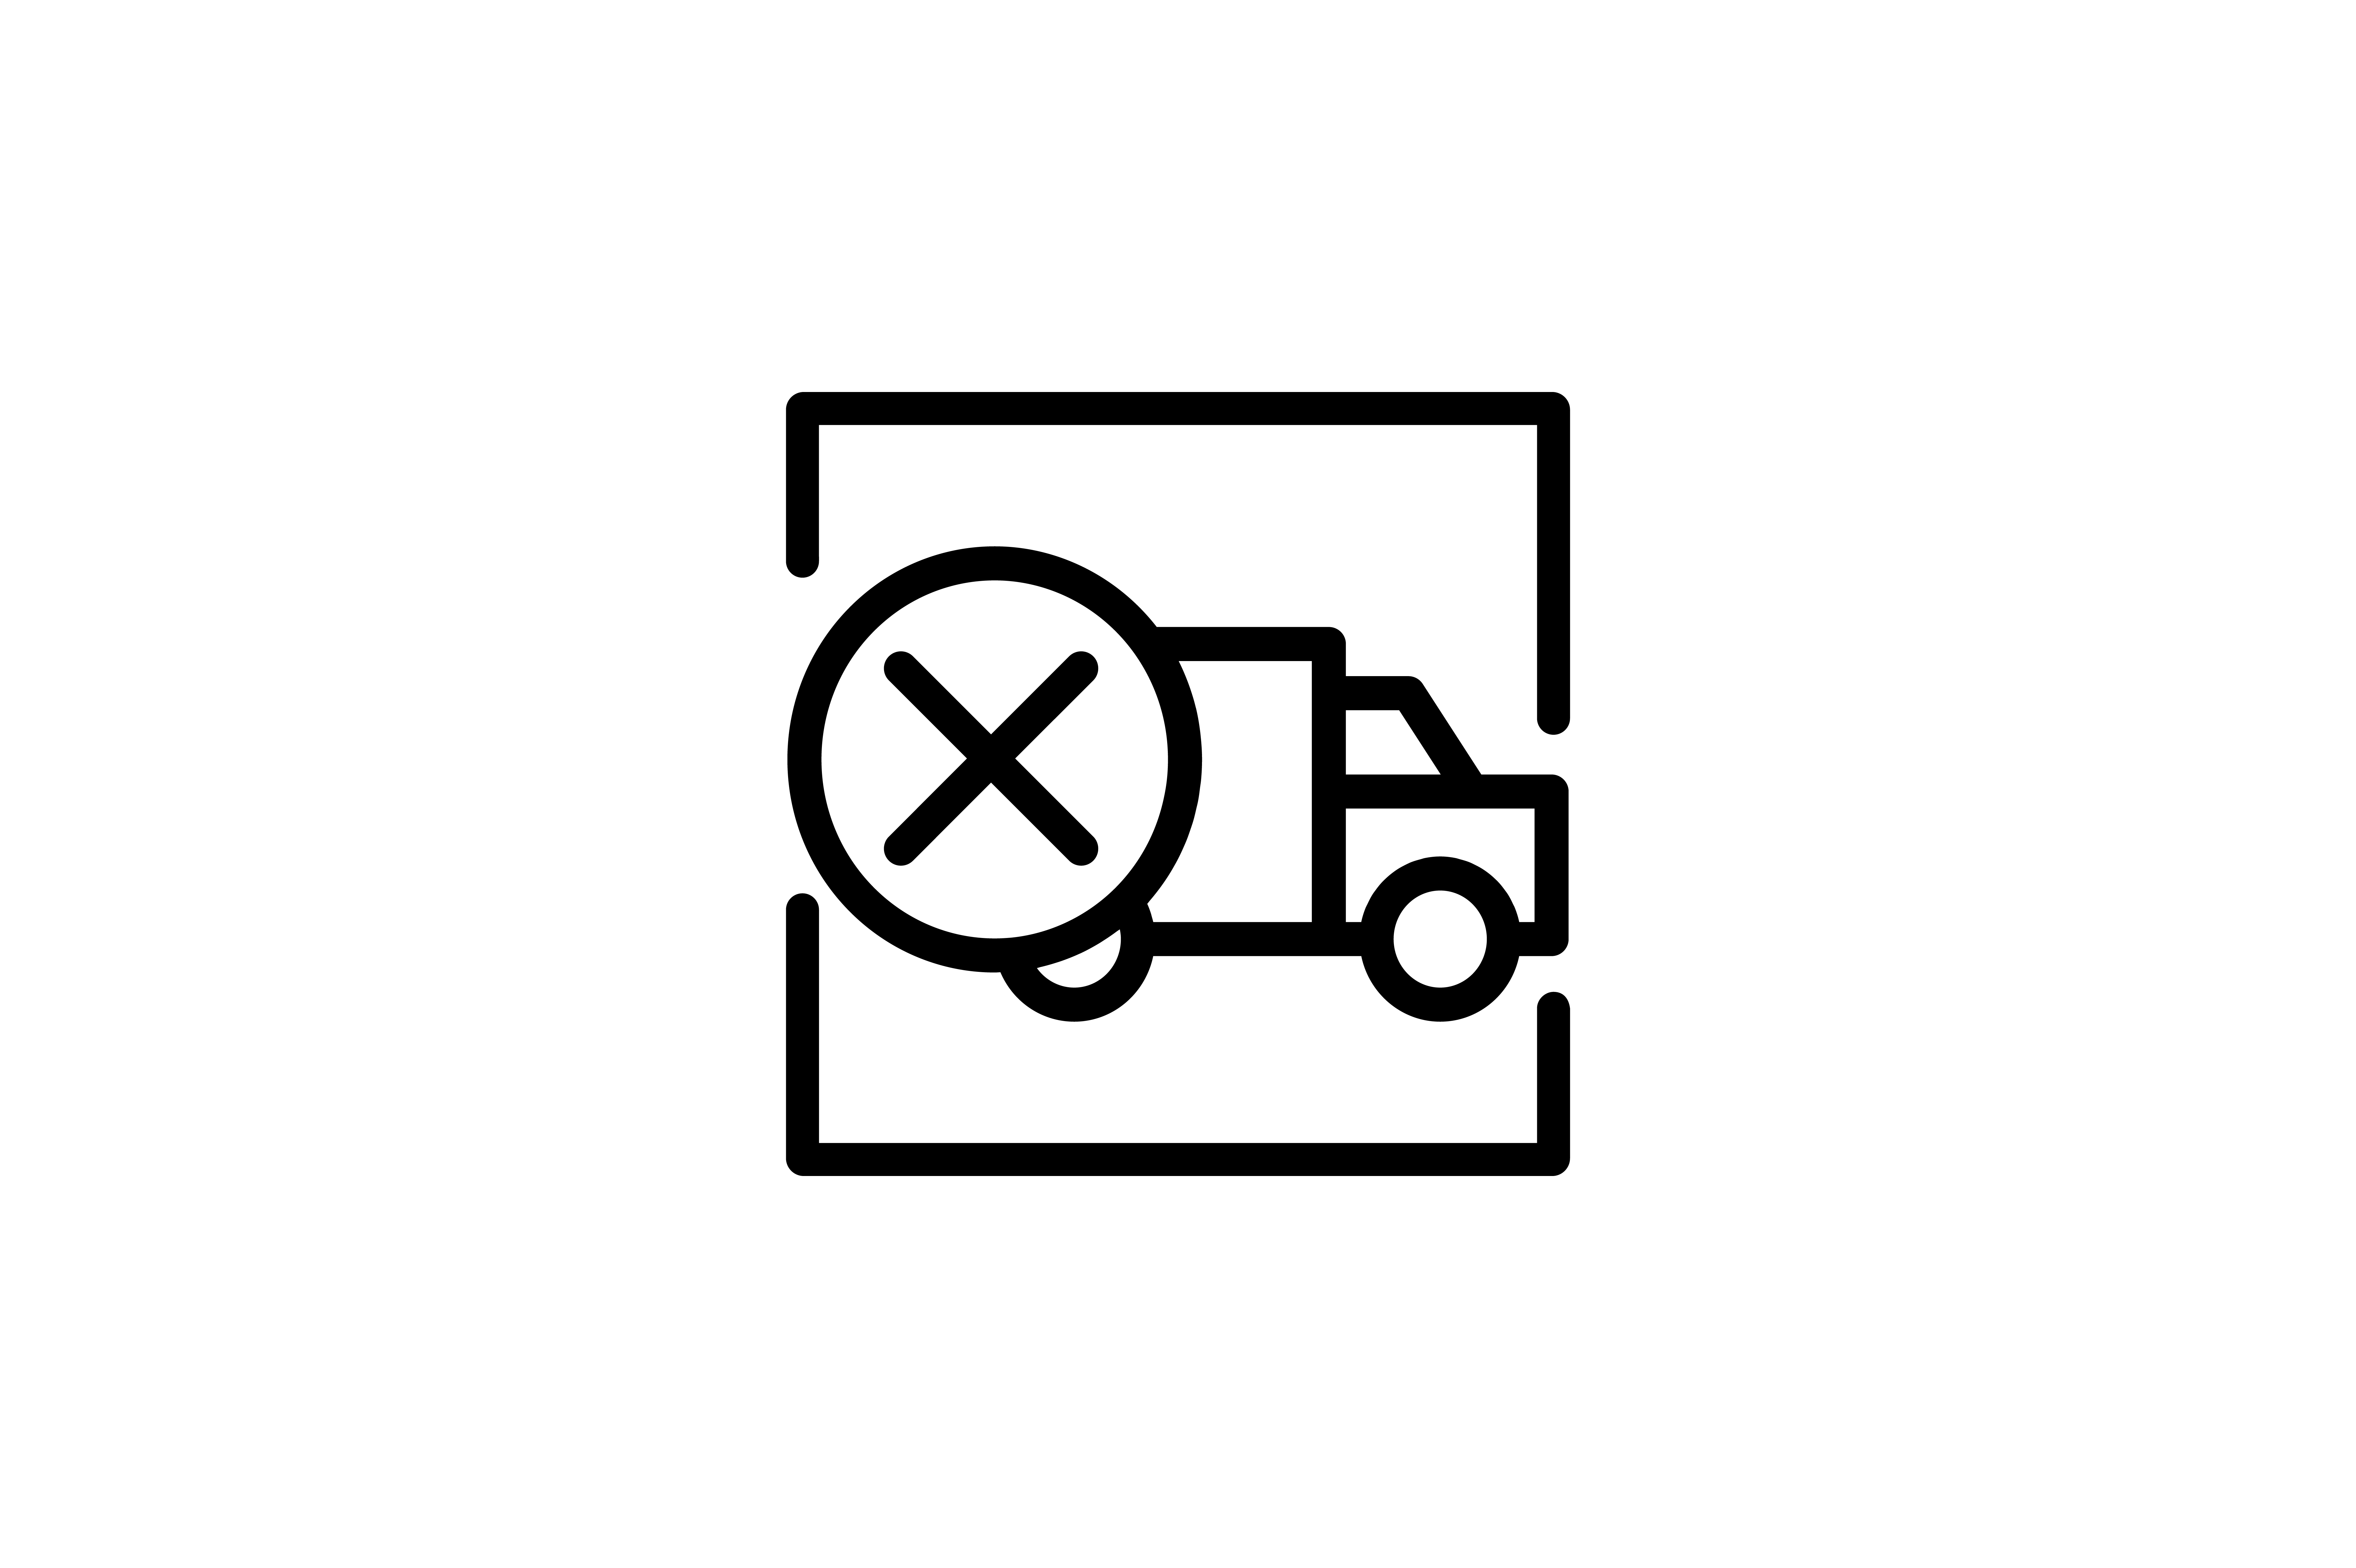 Logistic And Delivery Truck Remove Icon Graphic By Alvianugrah30